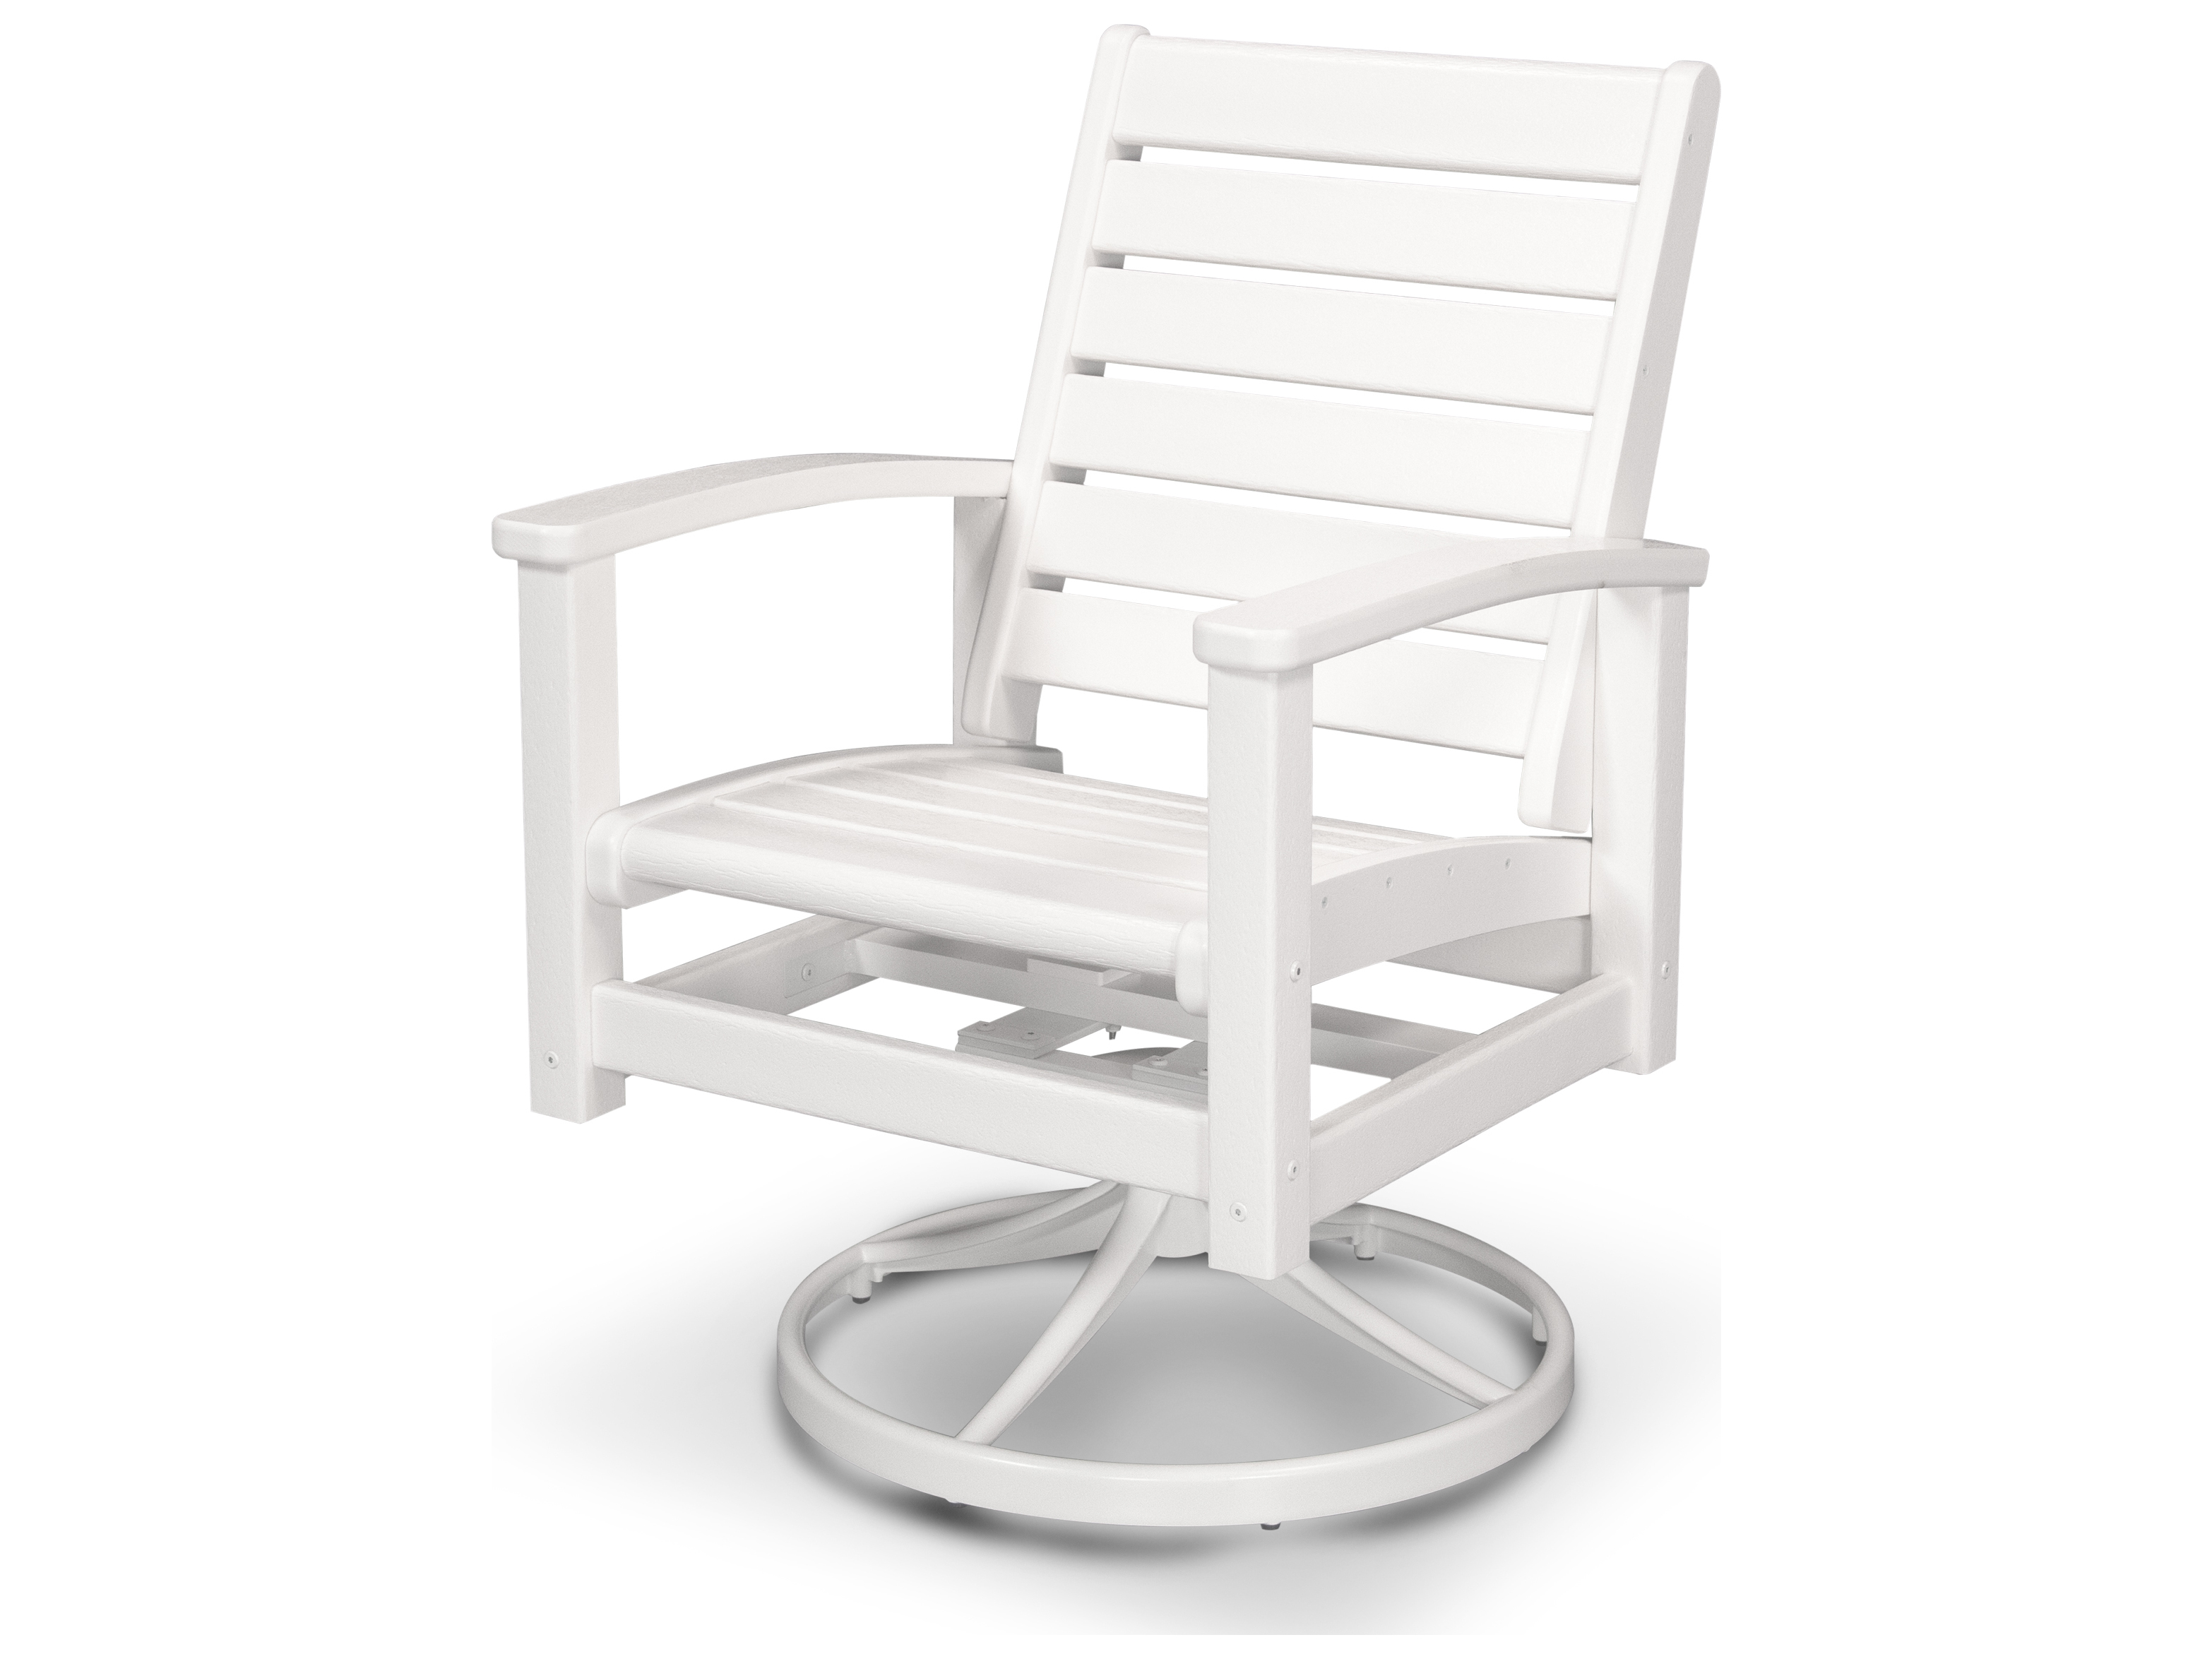 Polywood Rocking Chairs Polywood Signature Recycled Plastic Swivel Rocker Chair